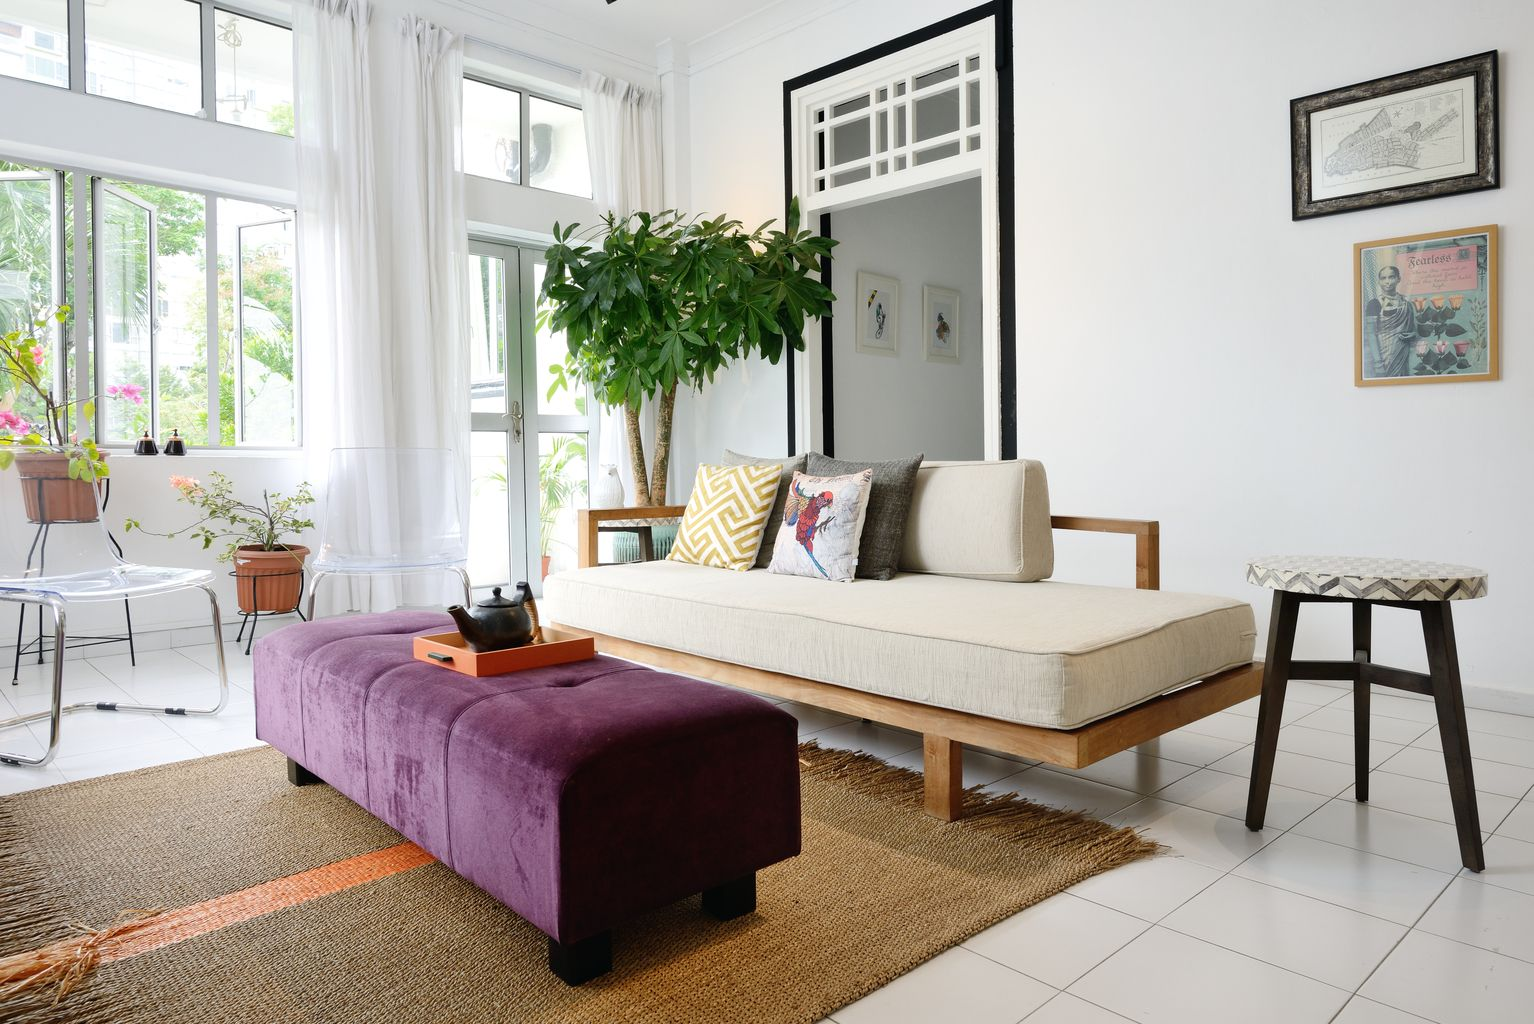 The focal point of the living room is a daybed made in teak wood ...